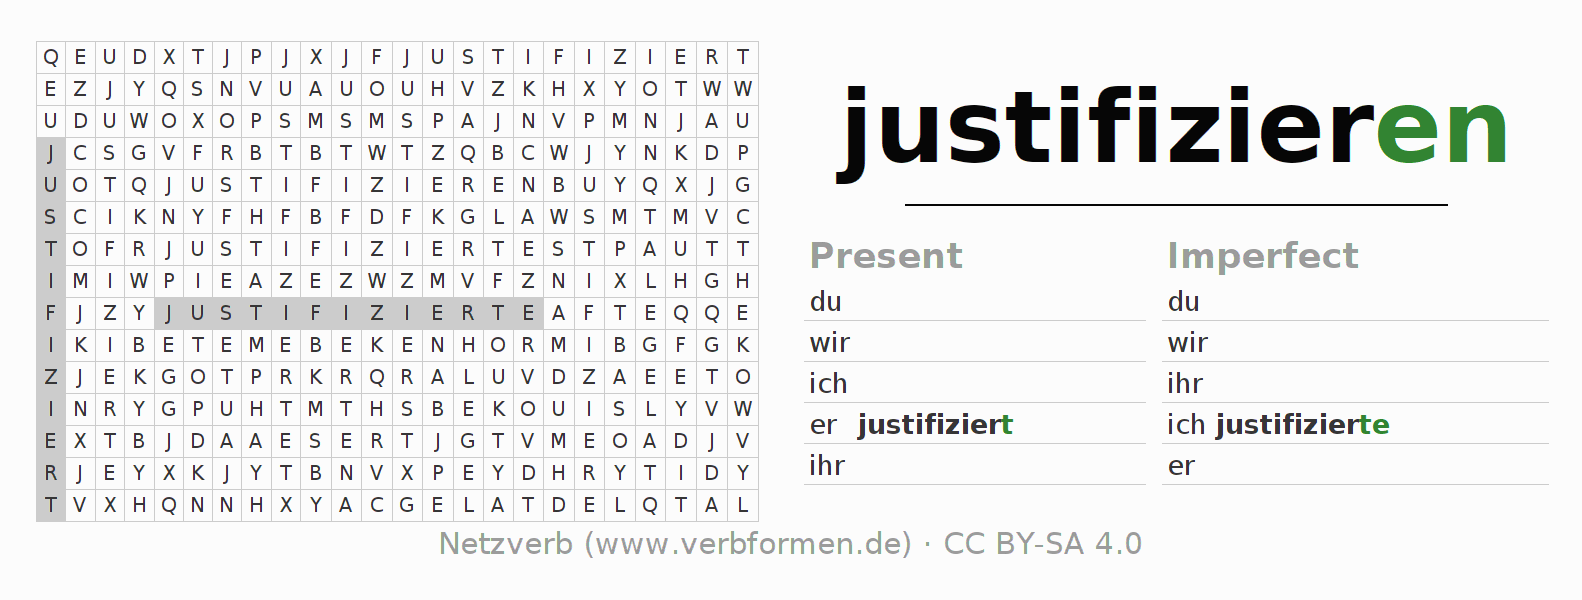 Word search puzzle for the conjugation of the verb justifizieren